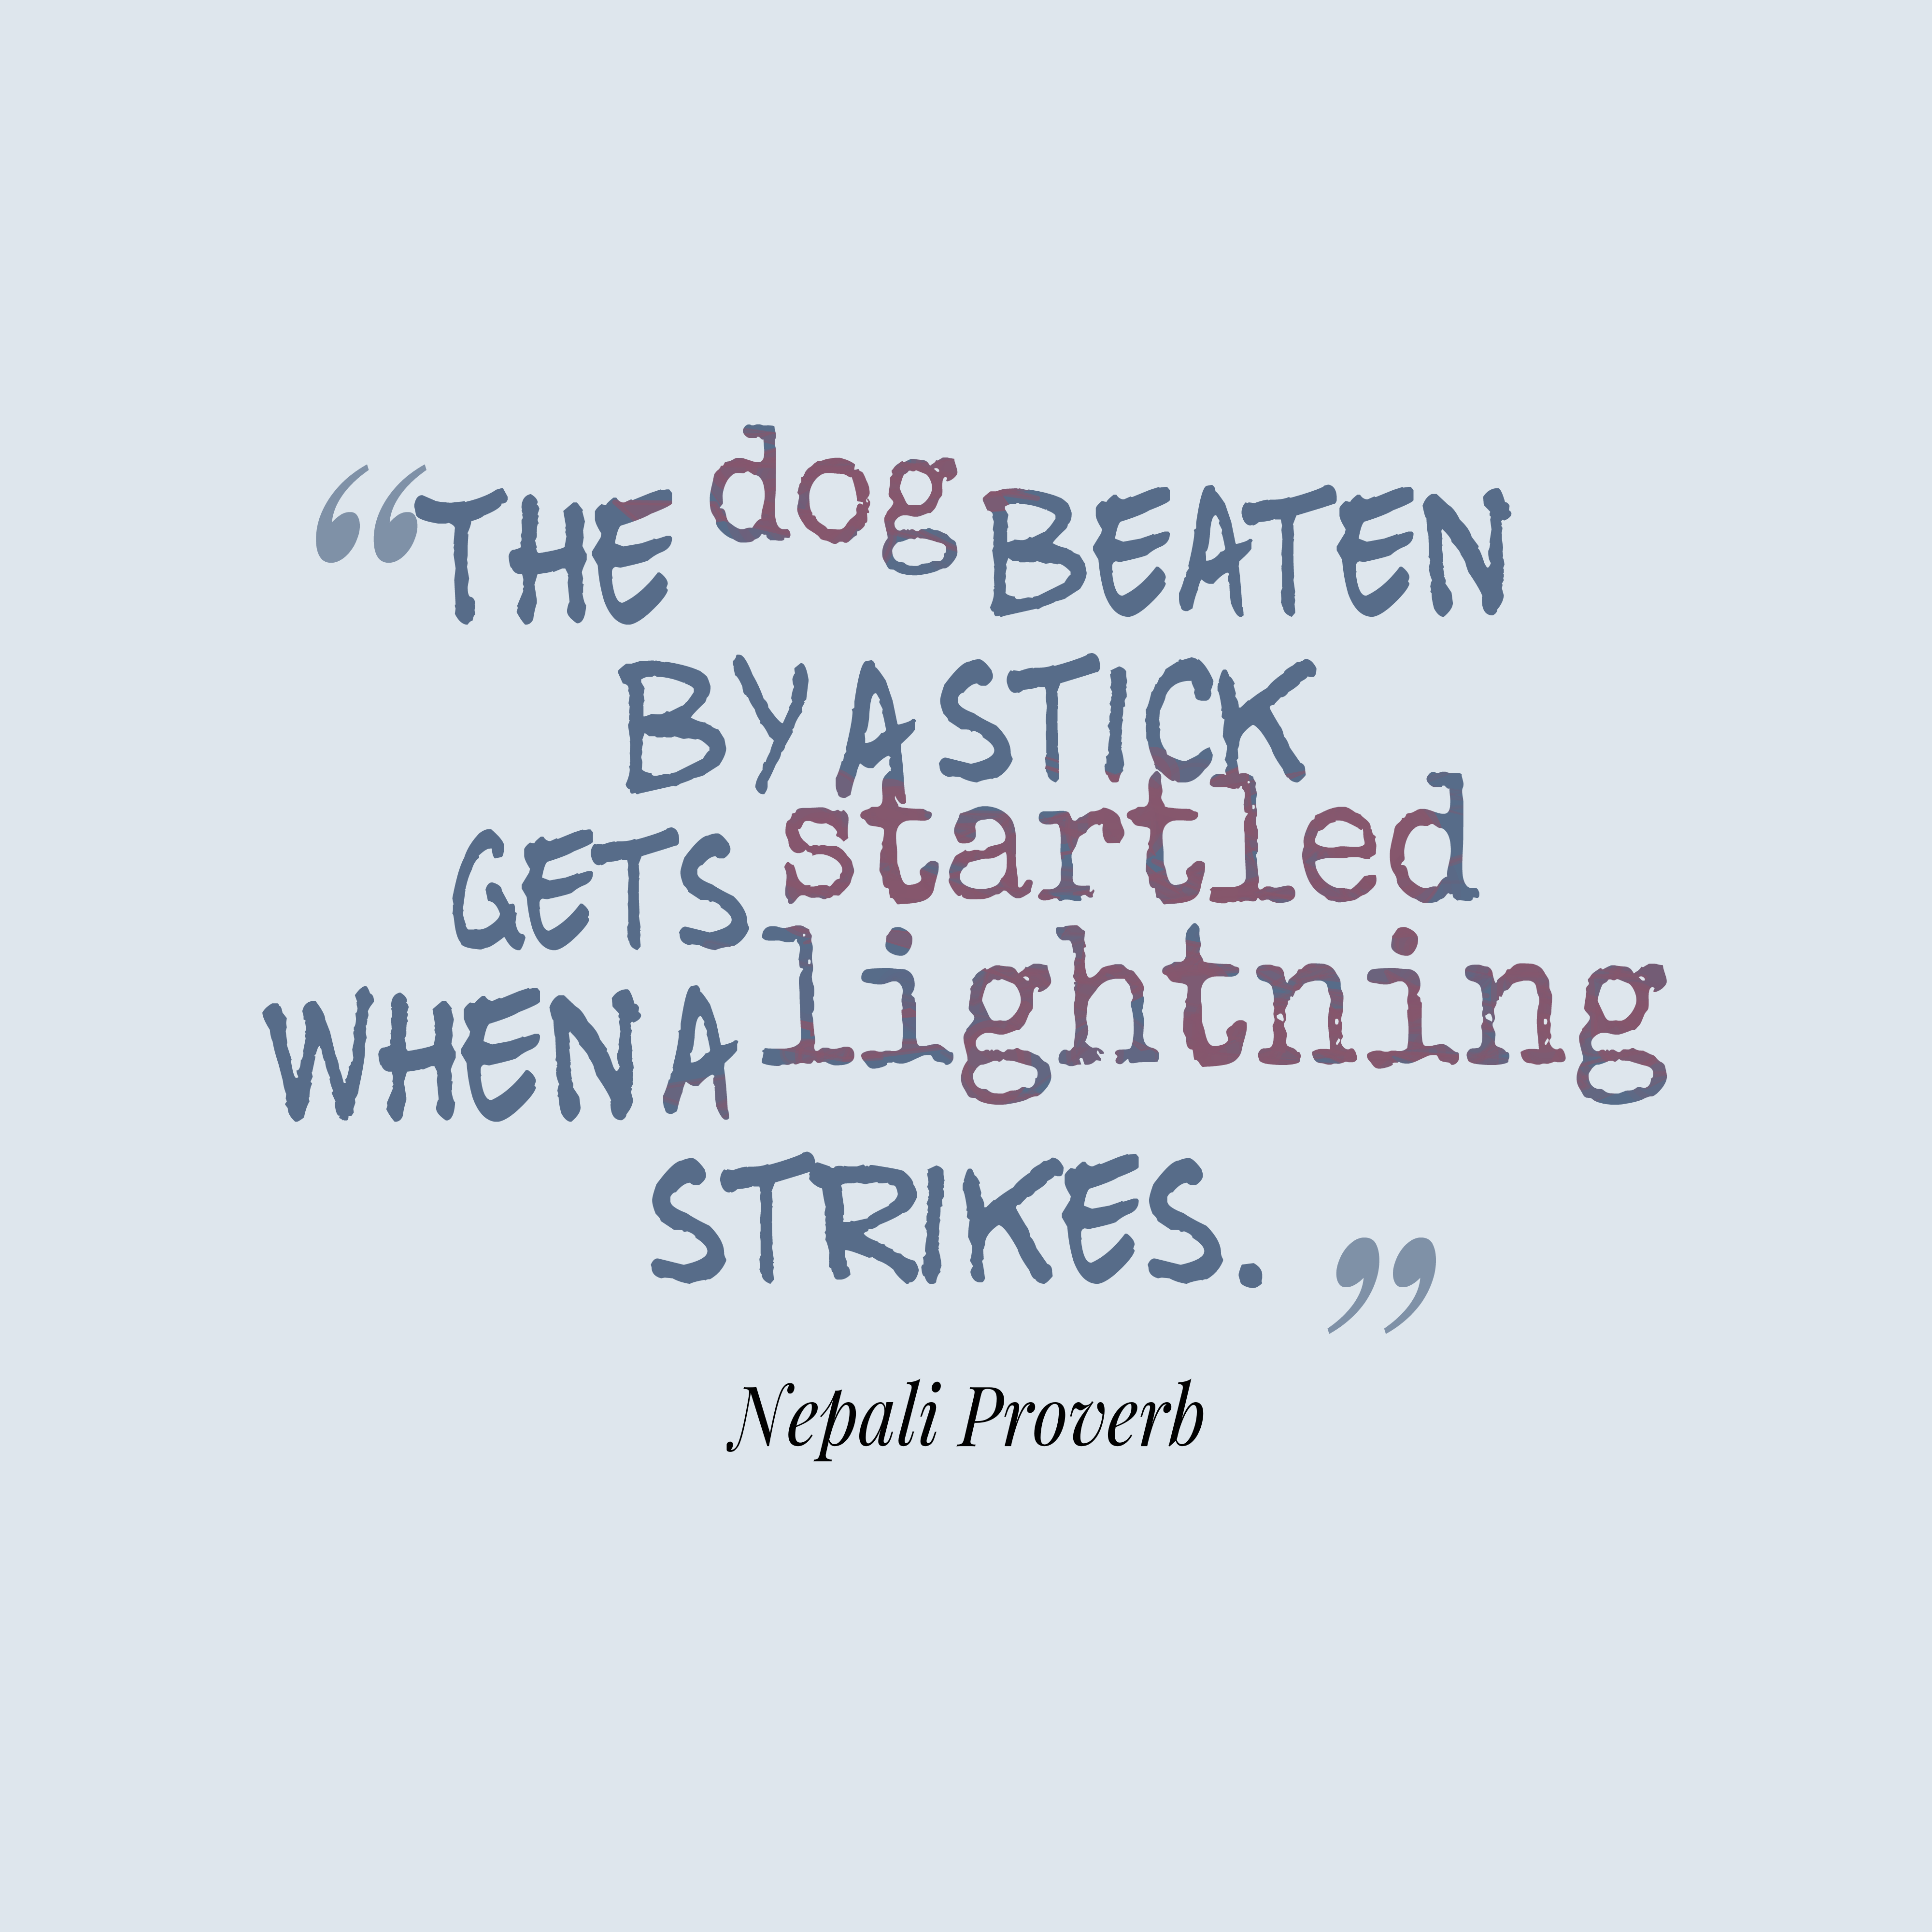 Quotes image of The dog beaten by a stick gets startled when a lightning strikes.